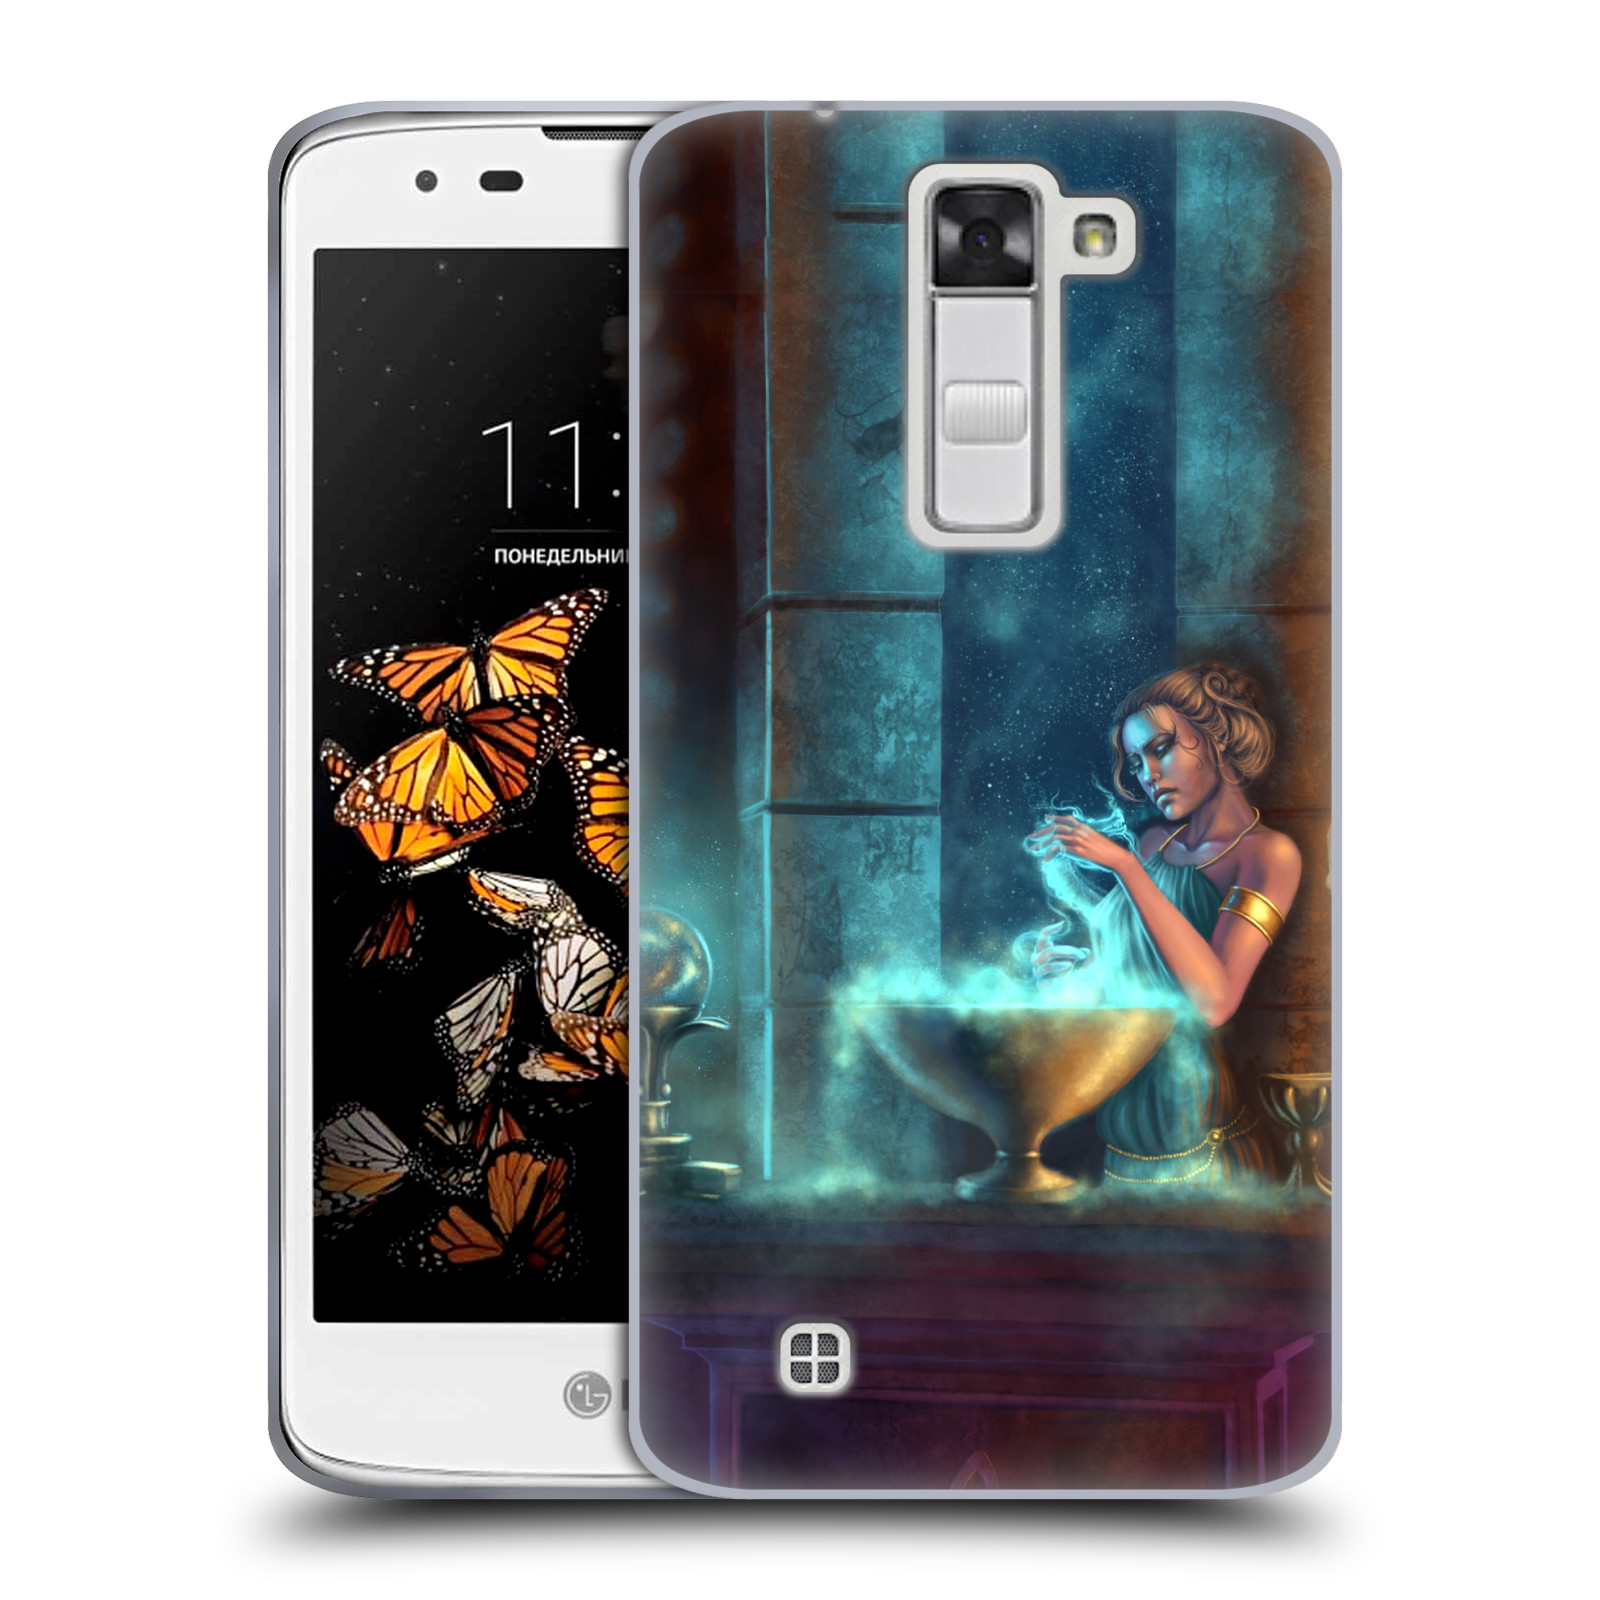 OFFICIAL-TIFFANY-034-TITO-034-TOLAND-SCOTT-WITCHES-AND-WIZARD-GEL-CASE-FOR-LG-PHONES-2